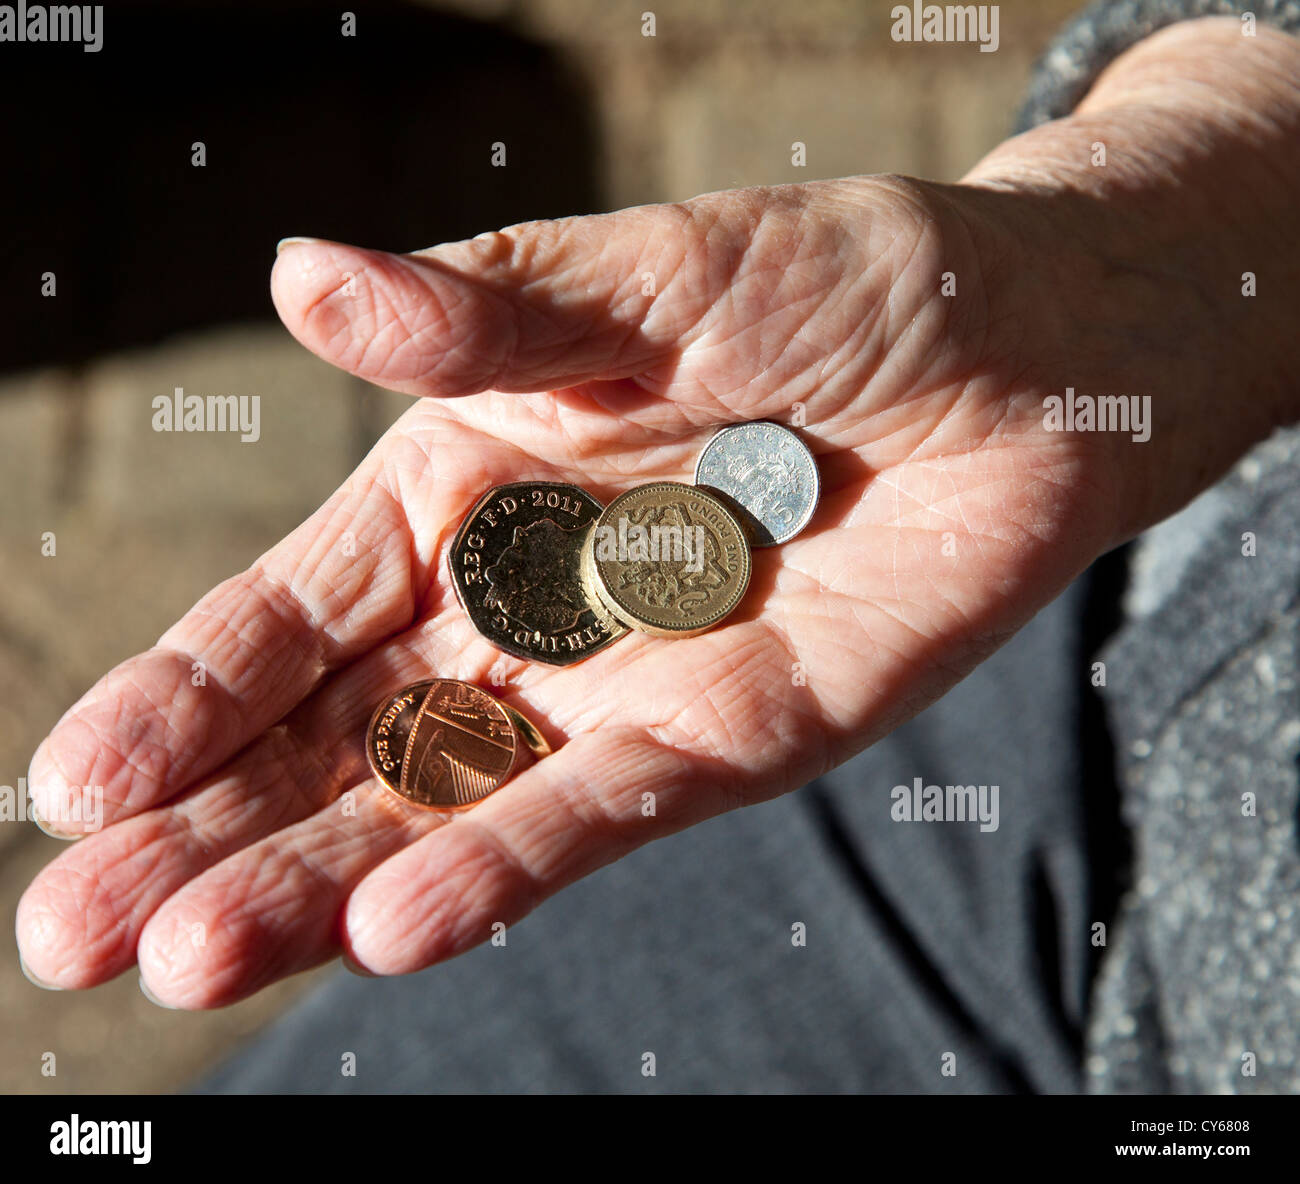 Poverty in old age - Stock Image